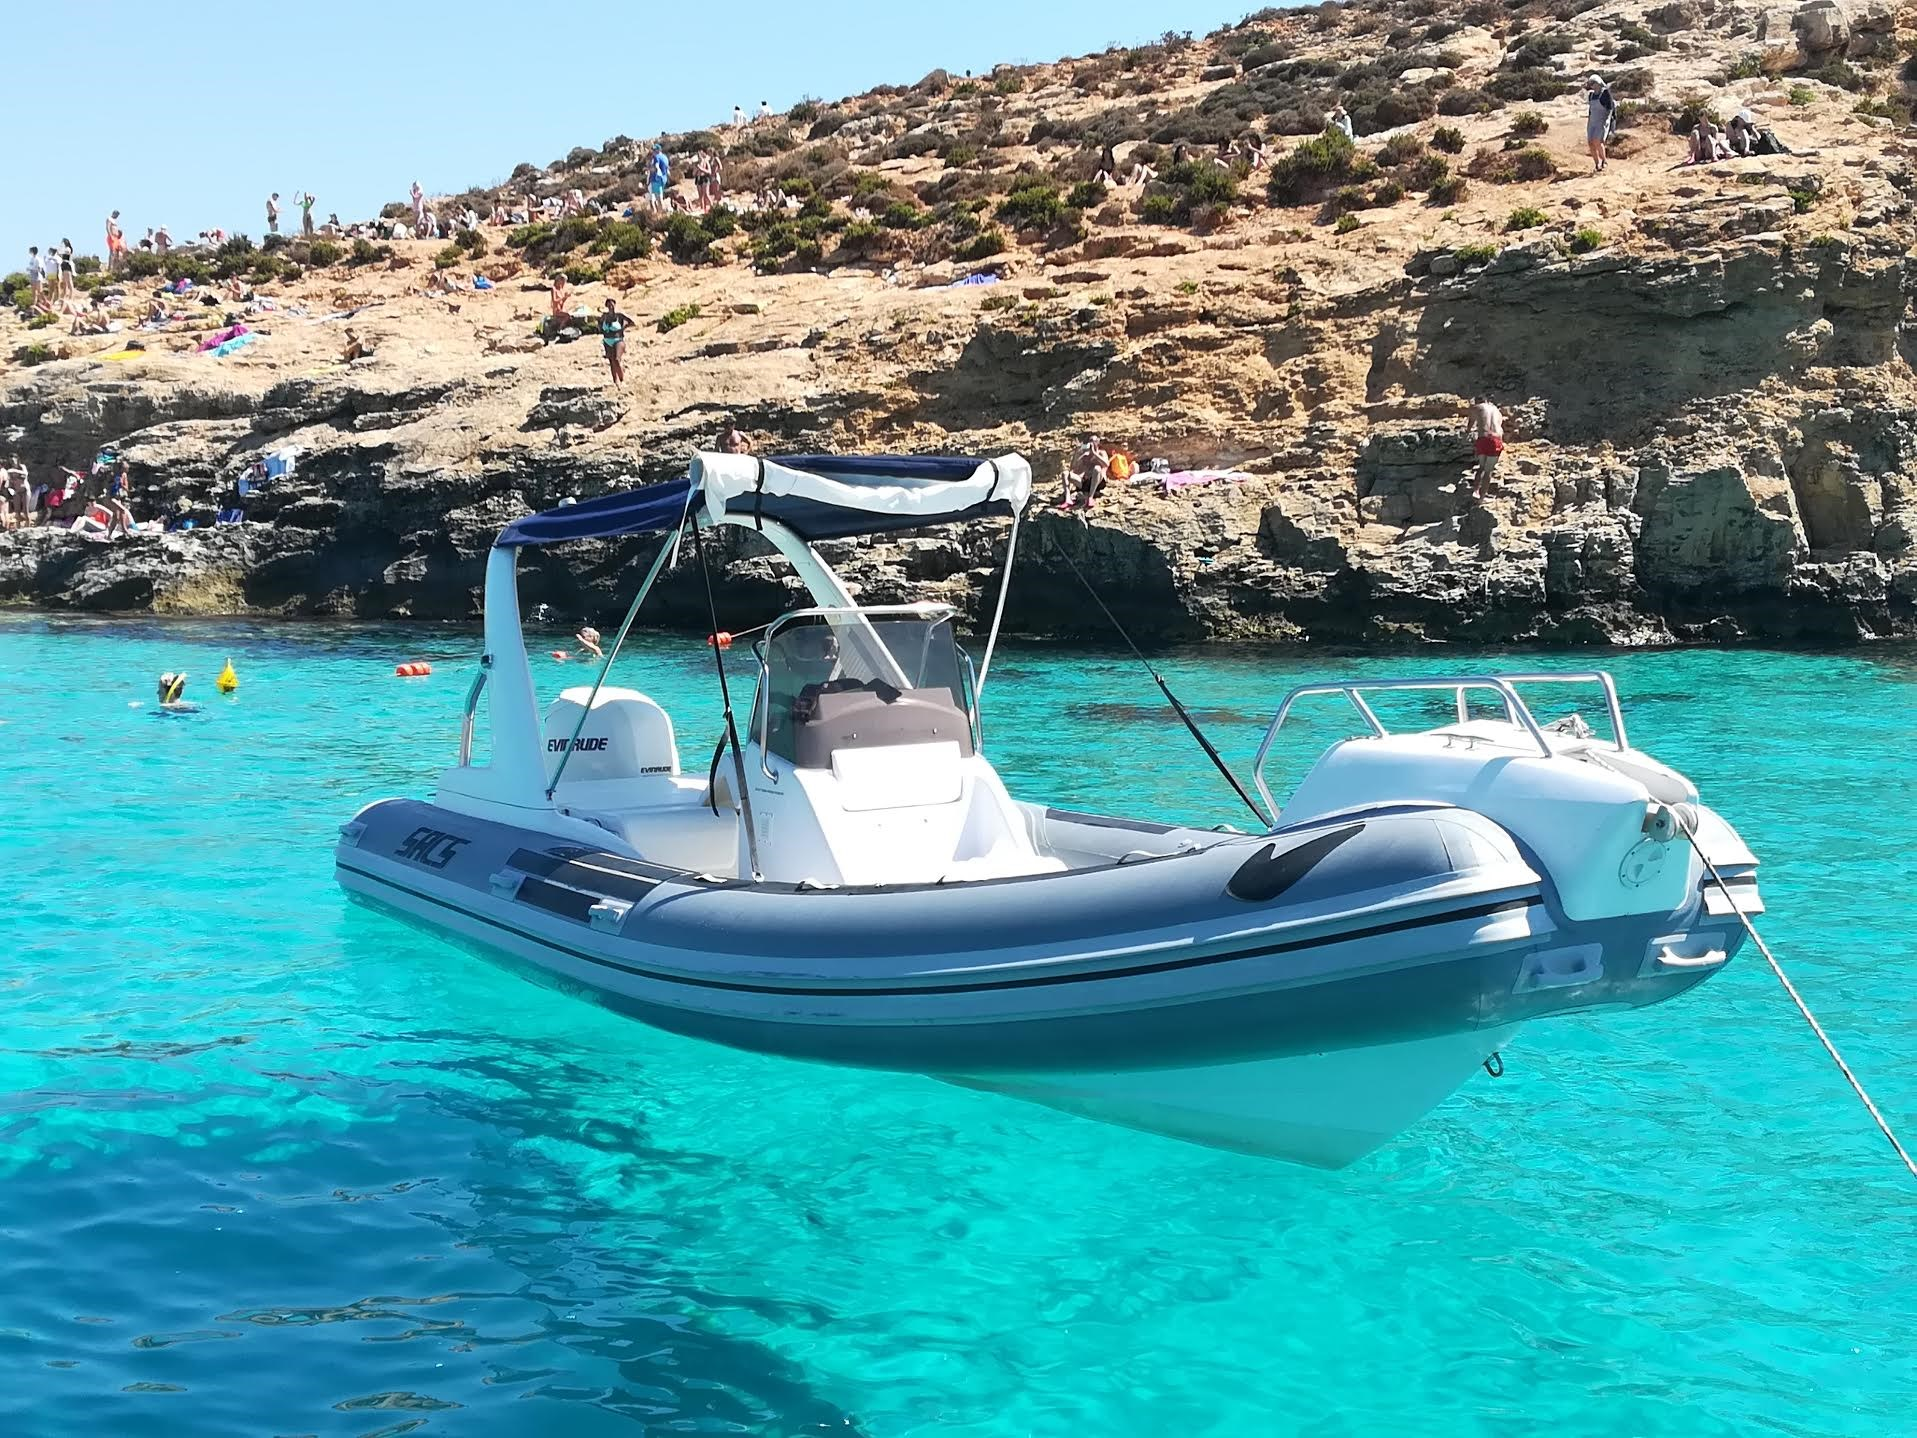 Rent / charter Rib / Dinghy for Full Day Tour, Half Day Tour, Harbour Cruise & Private Charter in Malta & Gozo - SACS S680